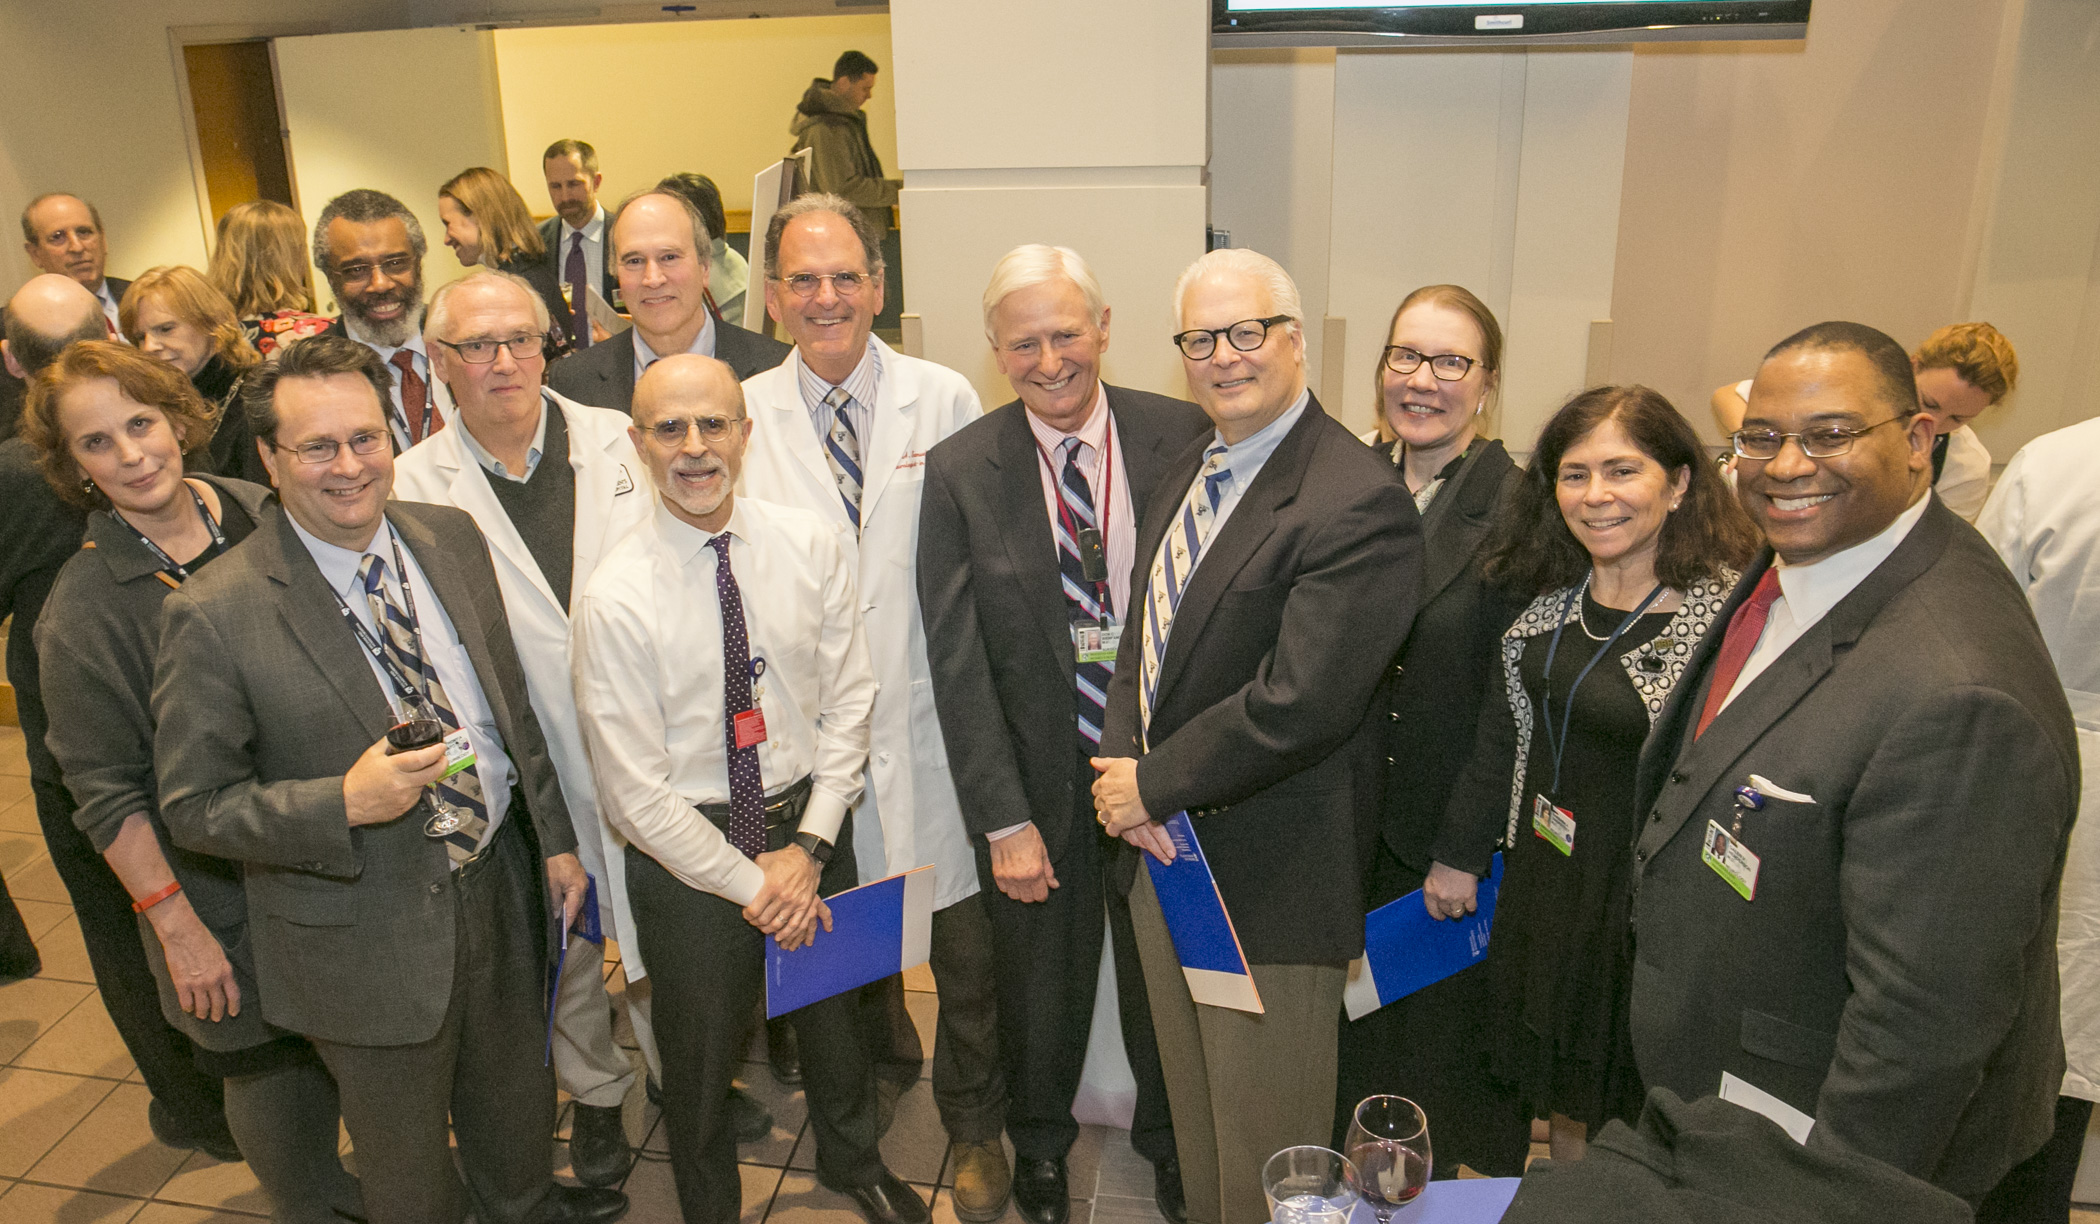 Many Distinguished Clinician honorees from BWH Neurology, with Department Chair Martin Samuels (sixth from right)